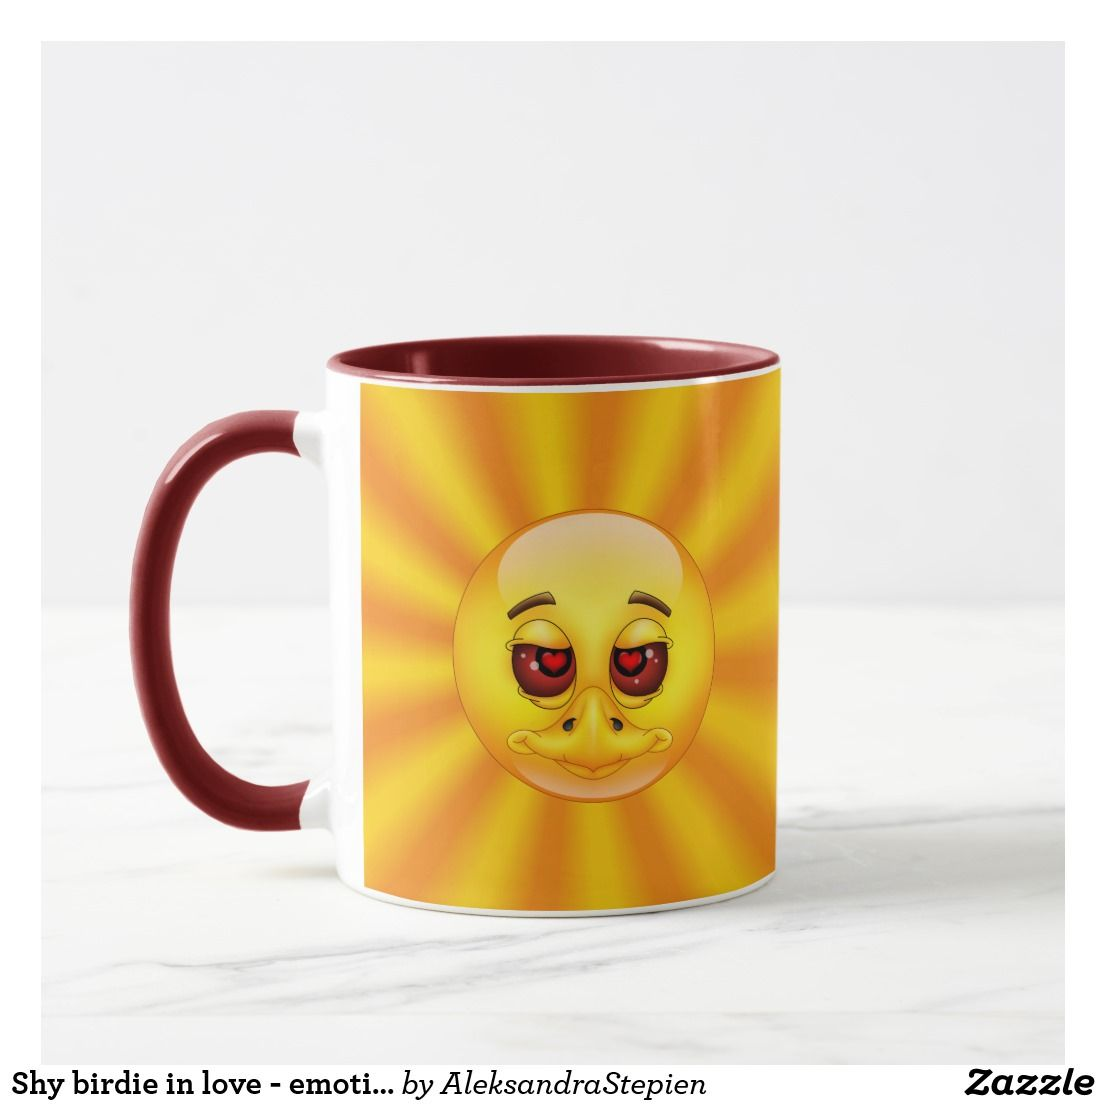 Shy Birdie In Love Emoticon Mug Zazzle Com Mugs Emoticon Cute Gifts